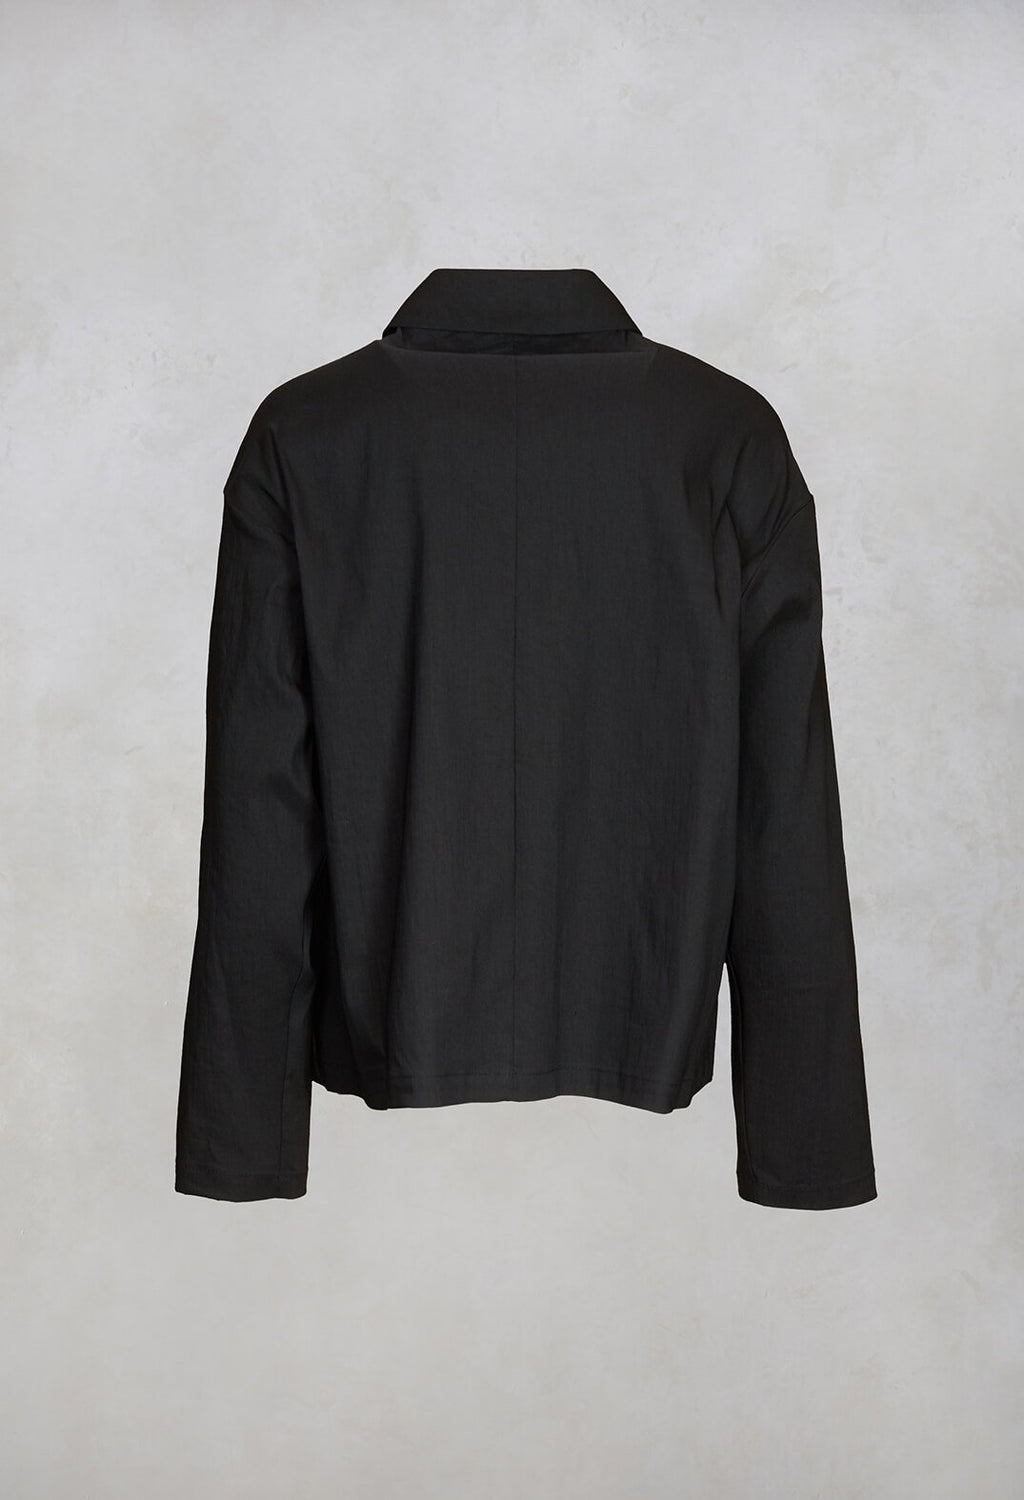 Boxy Jacket in Black